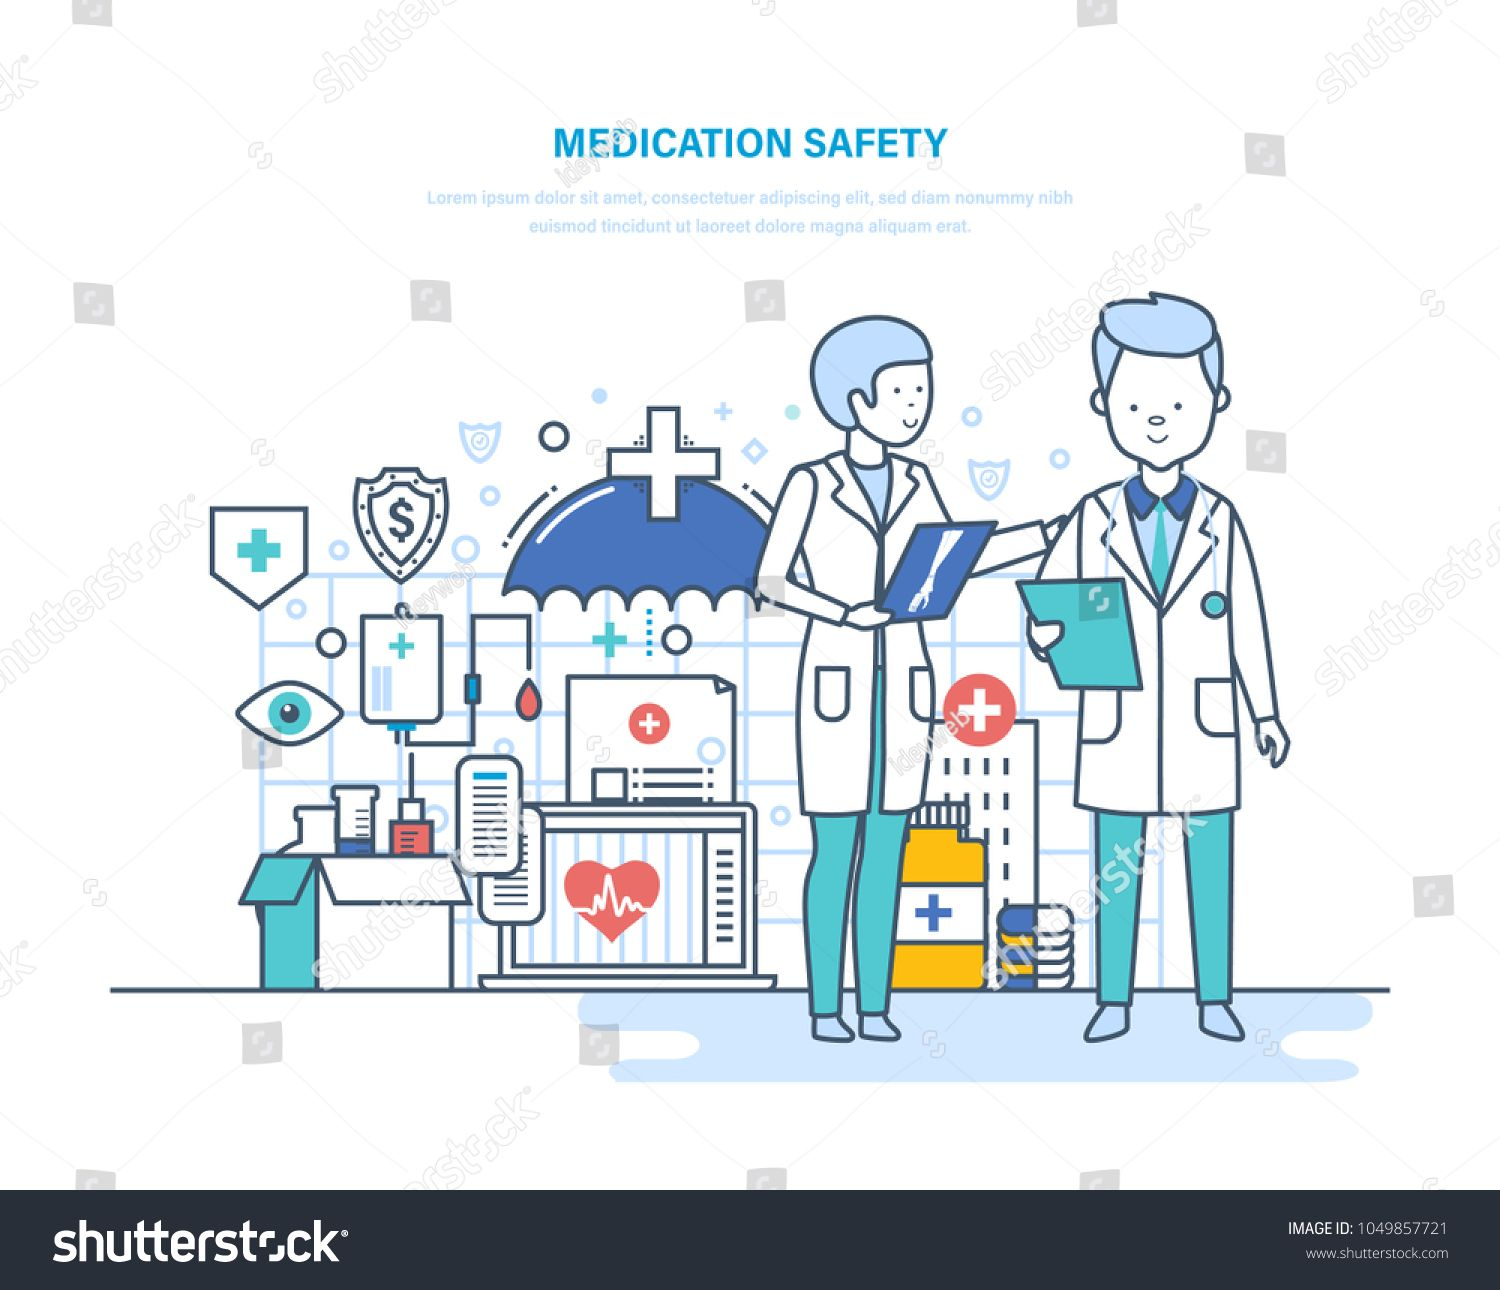 Medication safety of patients. Health insurance. Life